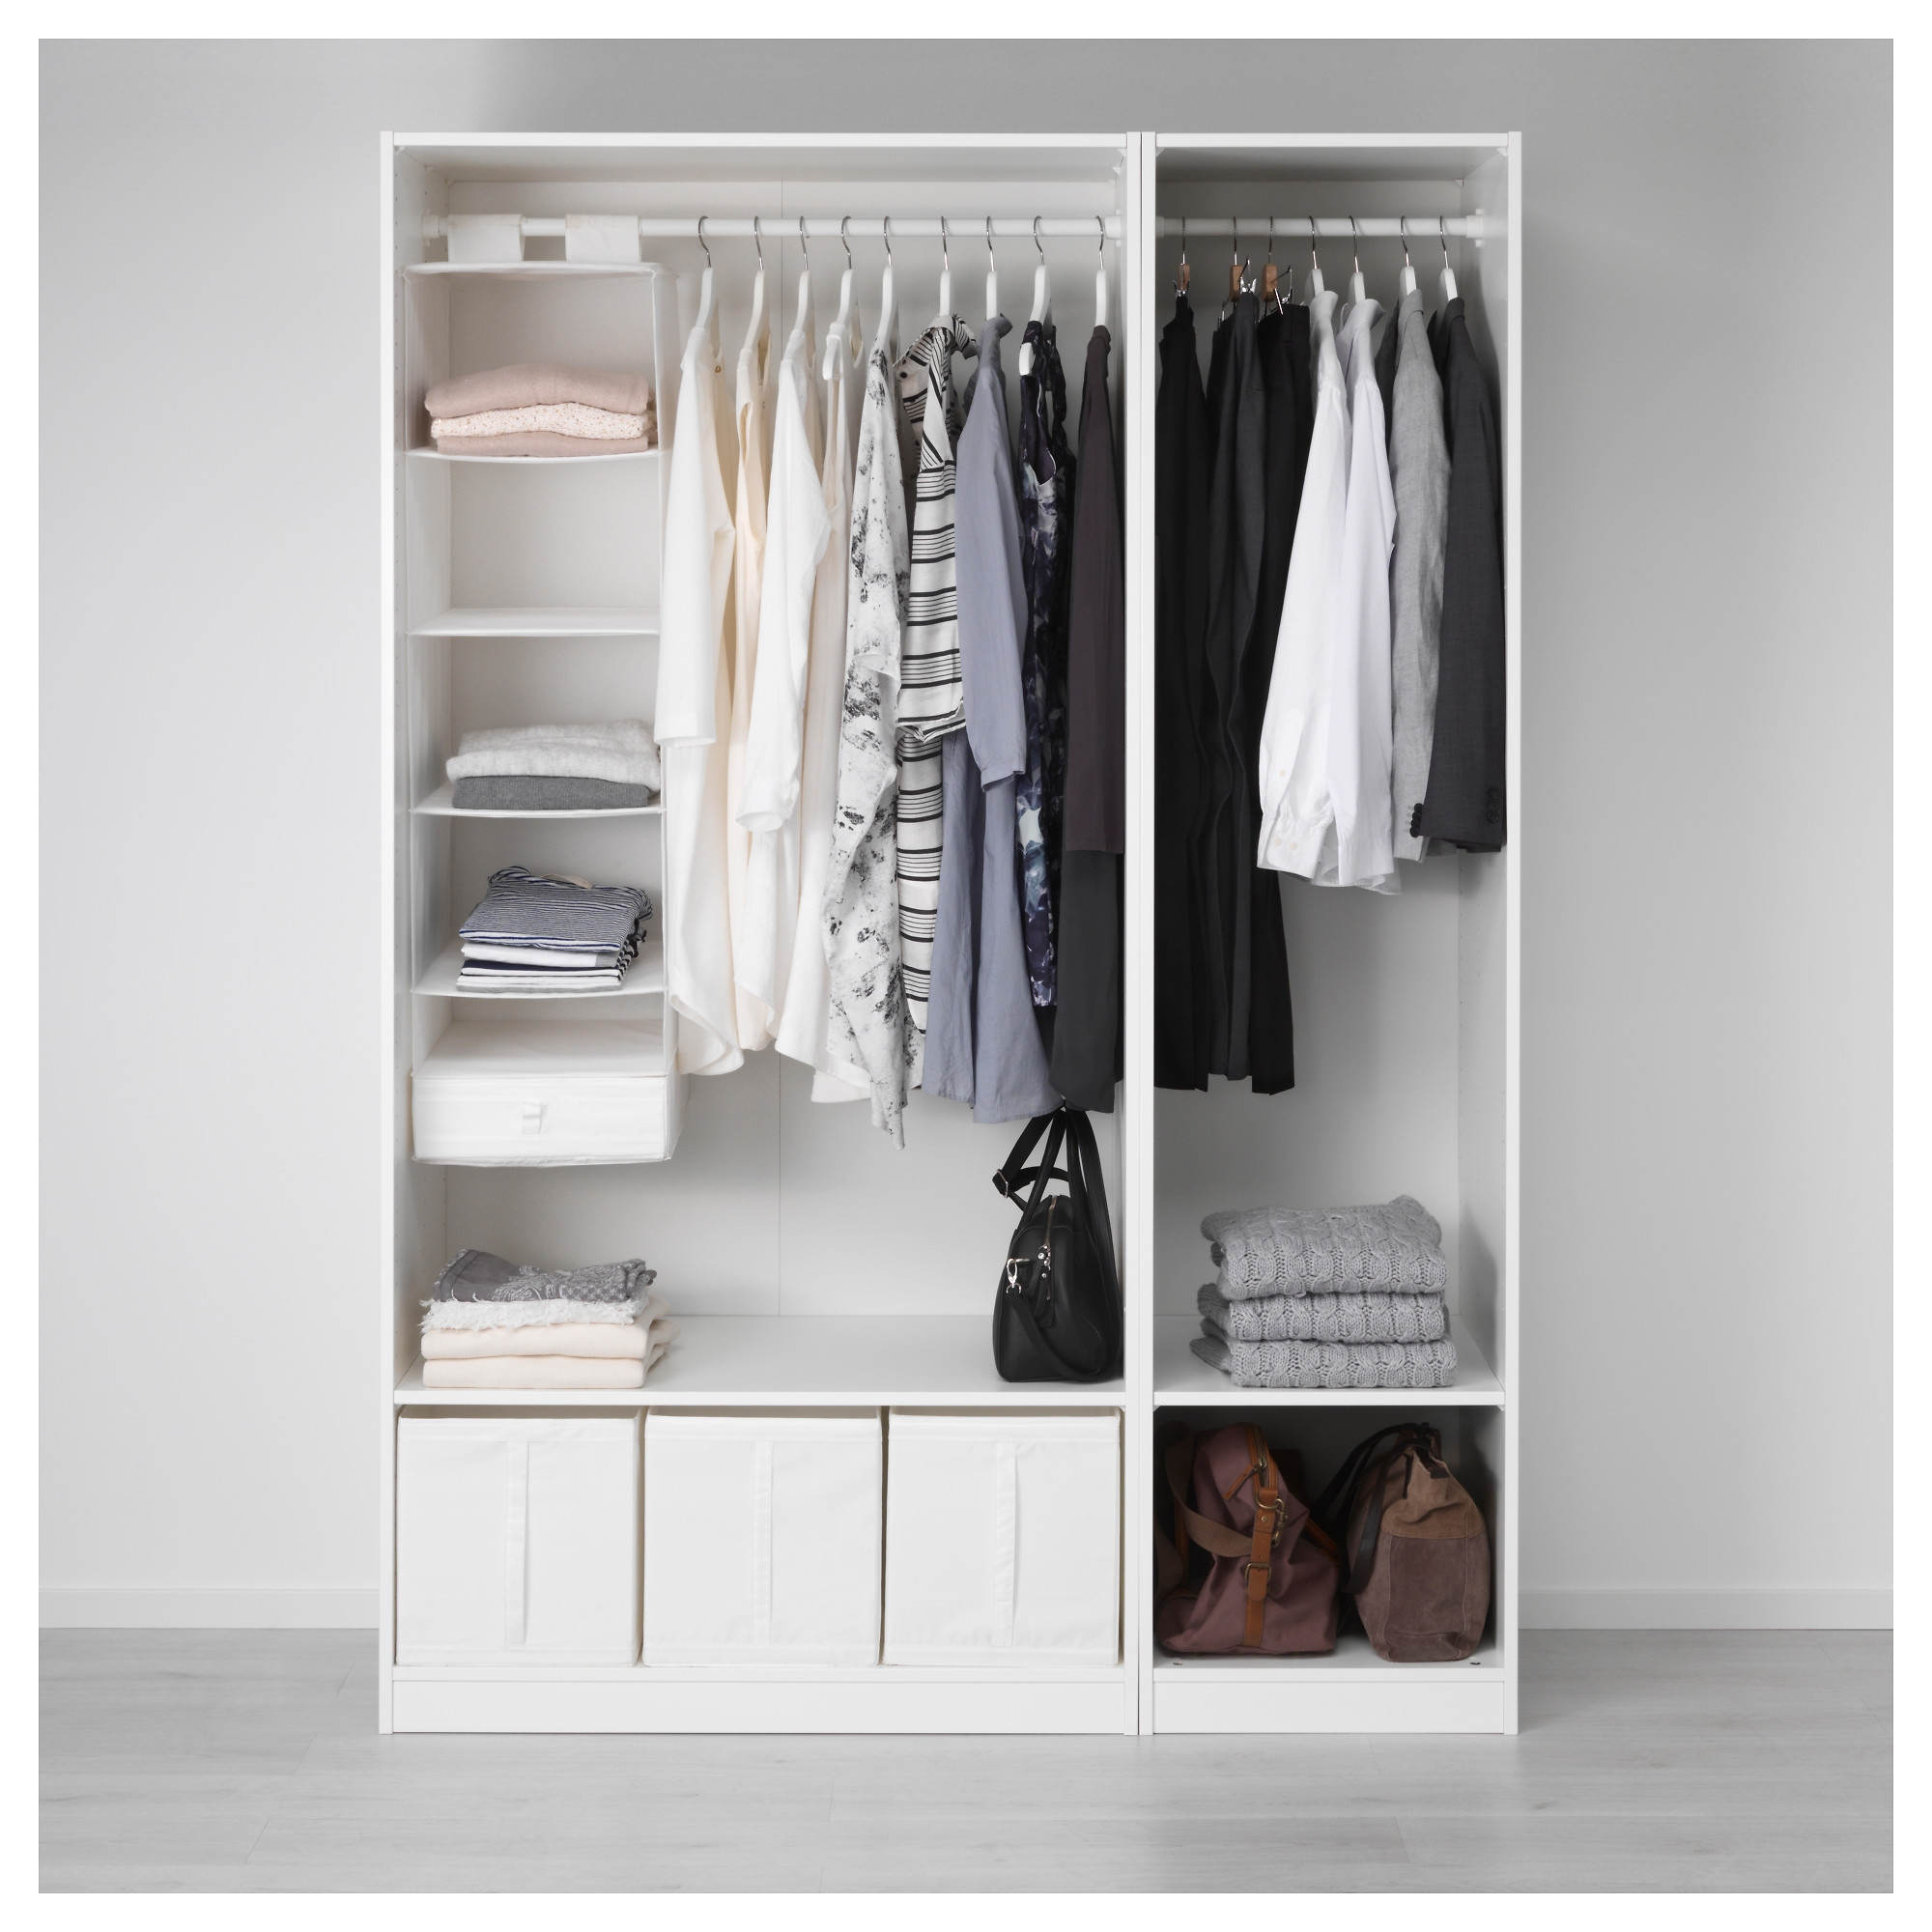 Pax Wardrobe Whitevikedal Mirror Glass 150x60x201 Cm Ikea Throughout Cupboard Inserts For Wardrobes (Image 17 of 25)